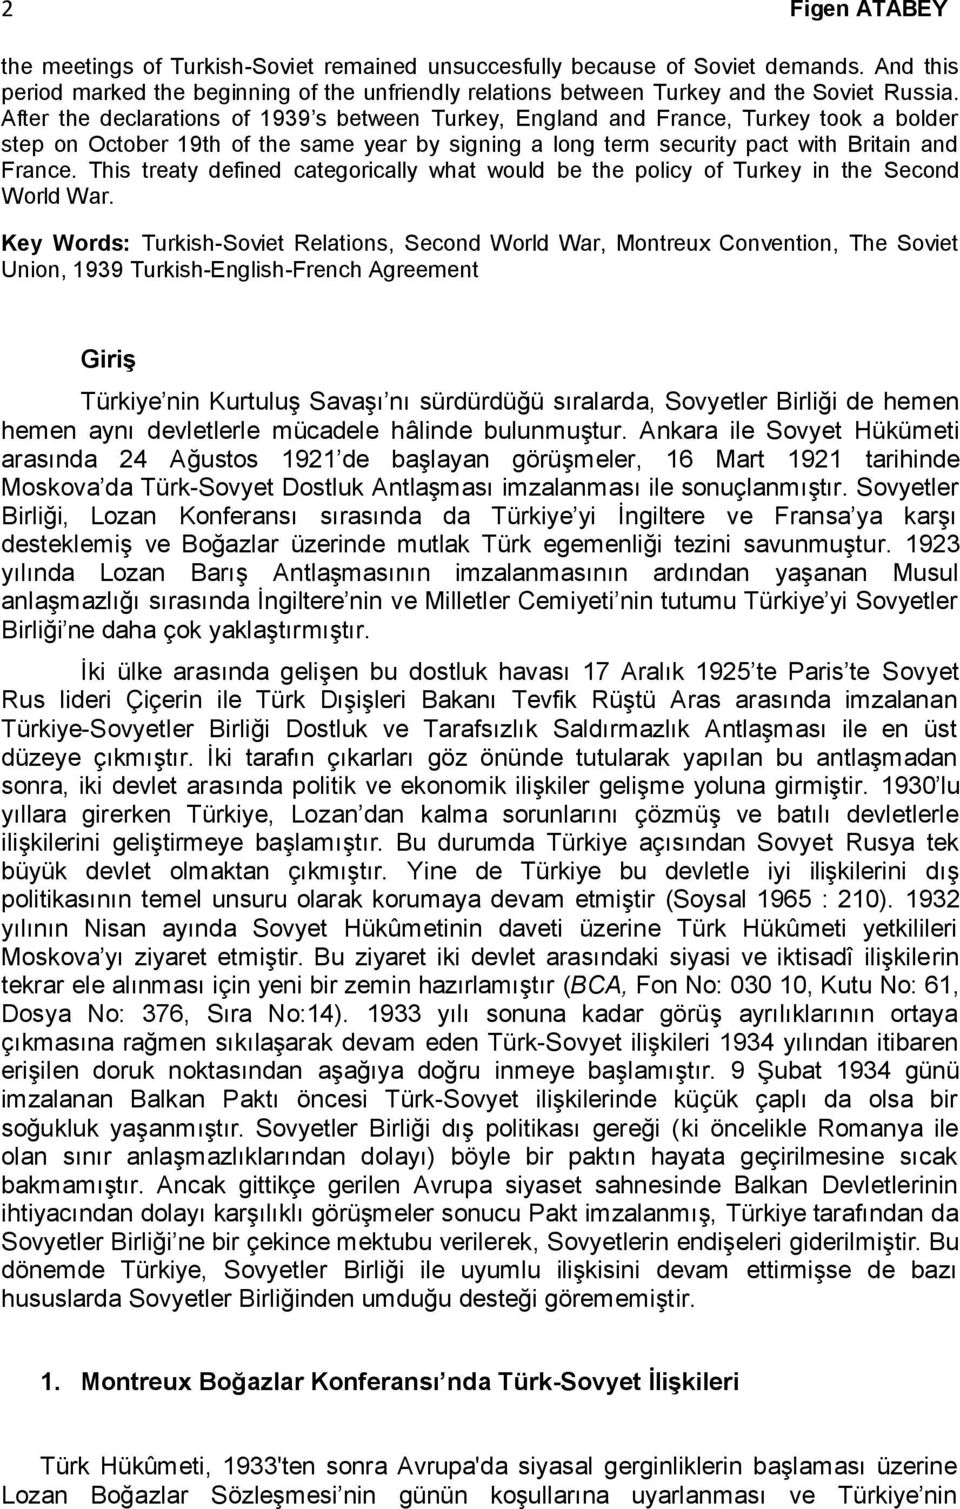 This treaty defined categorically what would be the policy of Turkey in the Second World War.